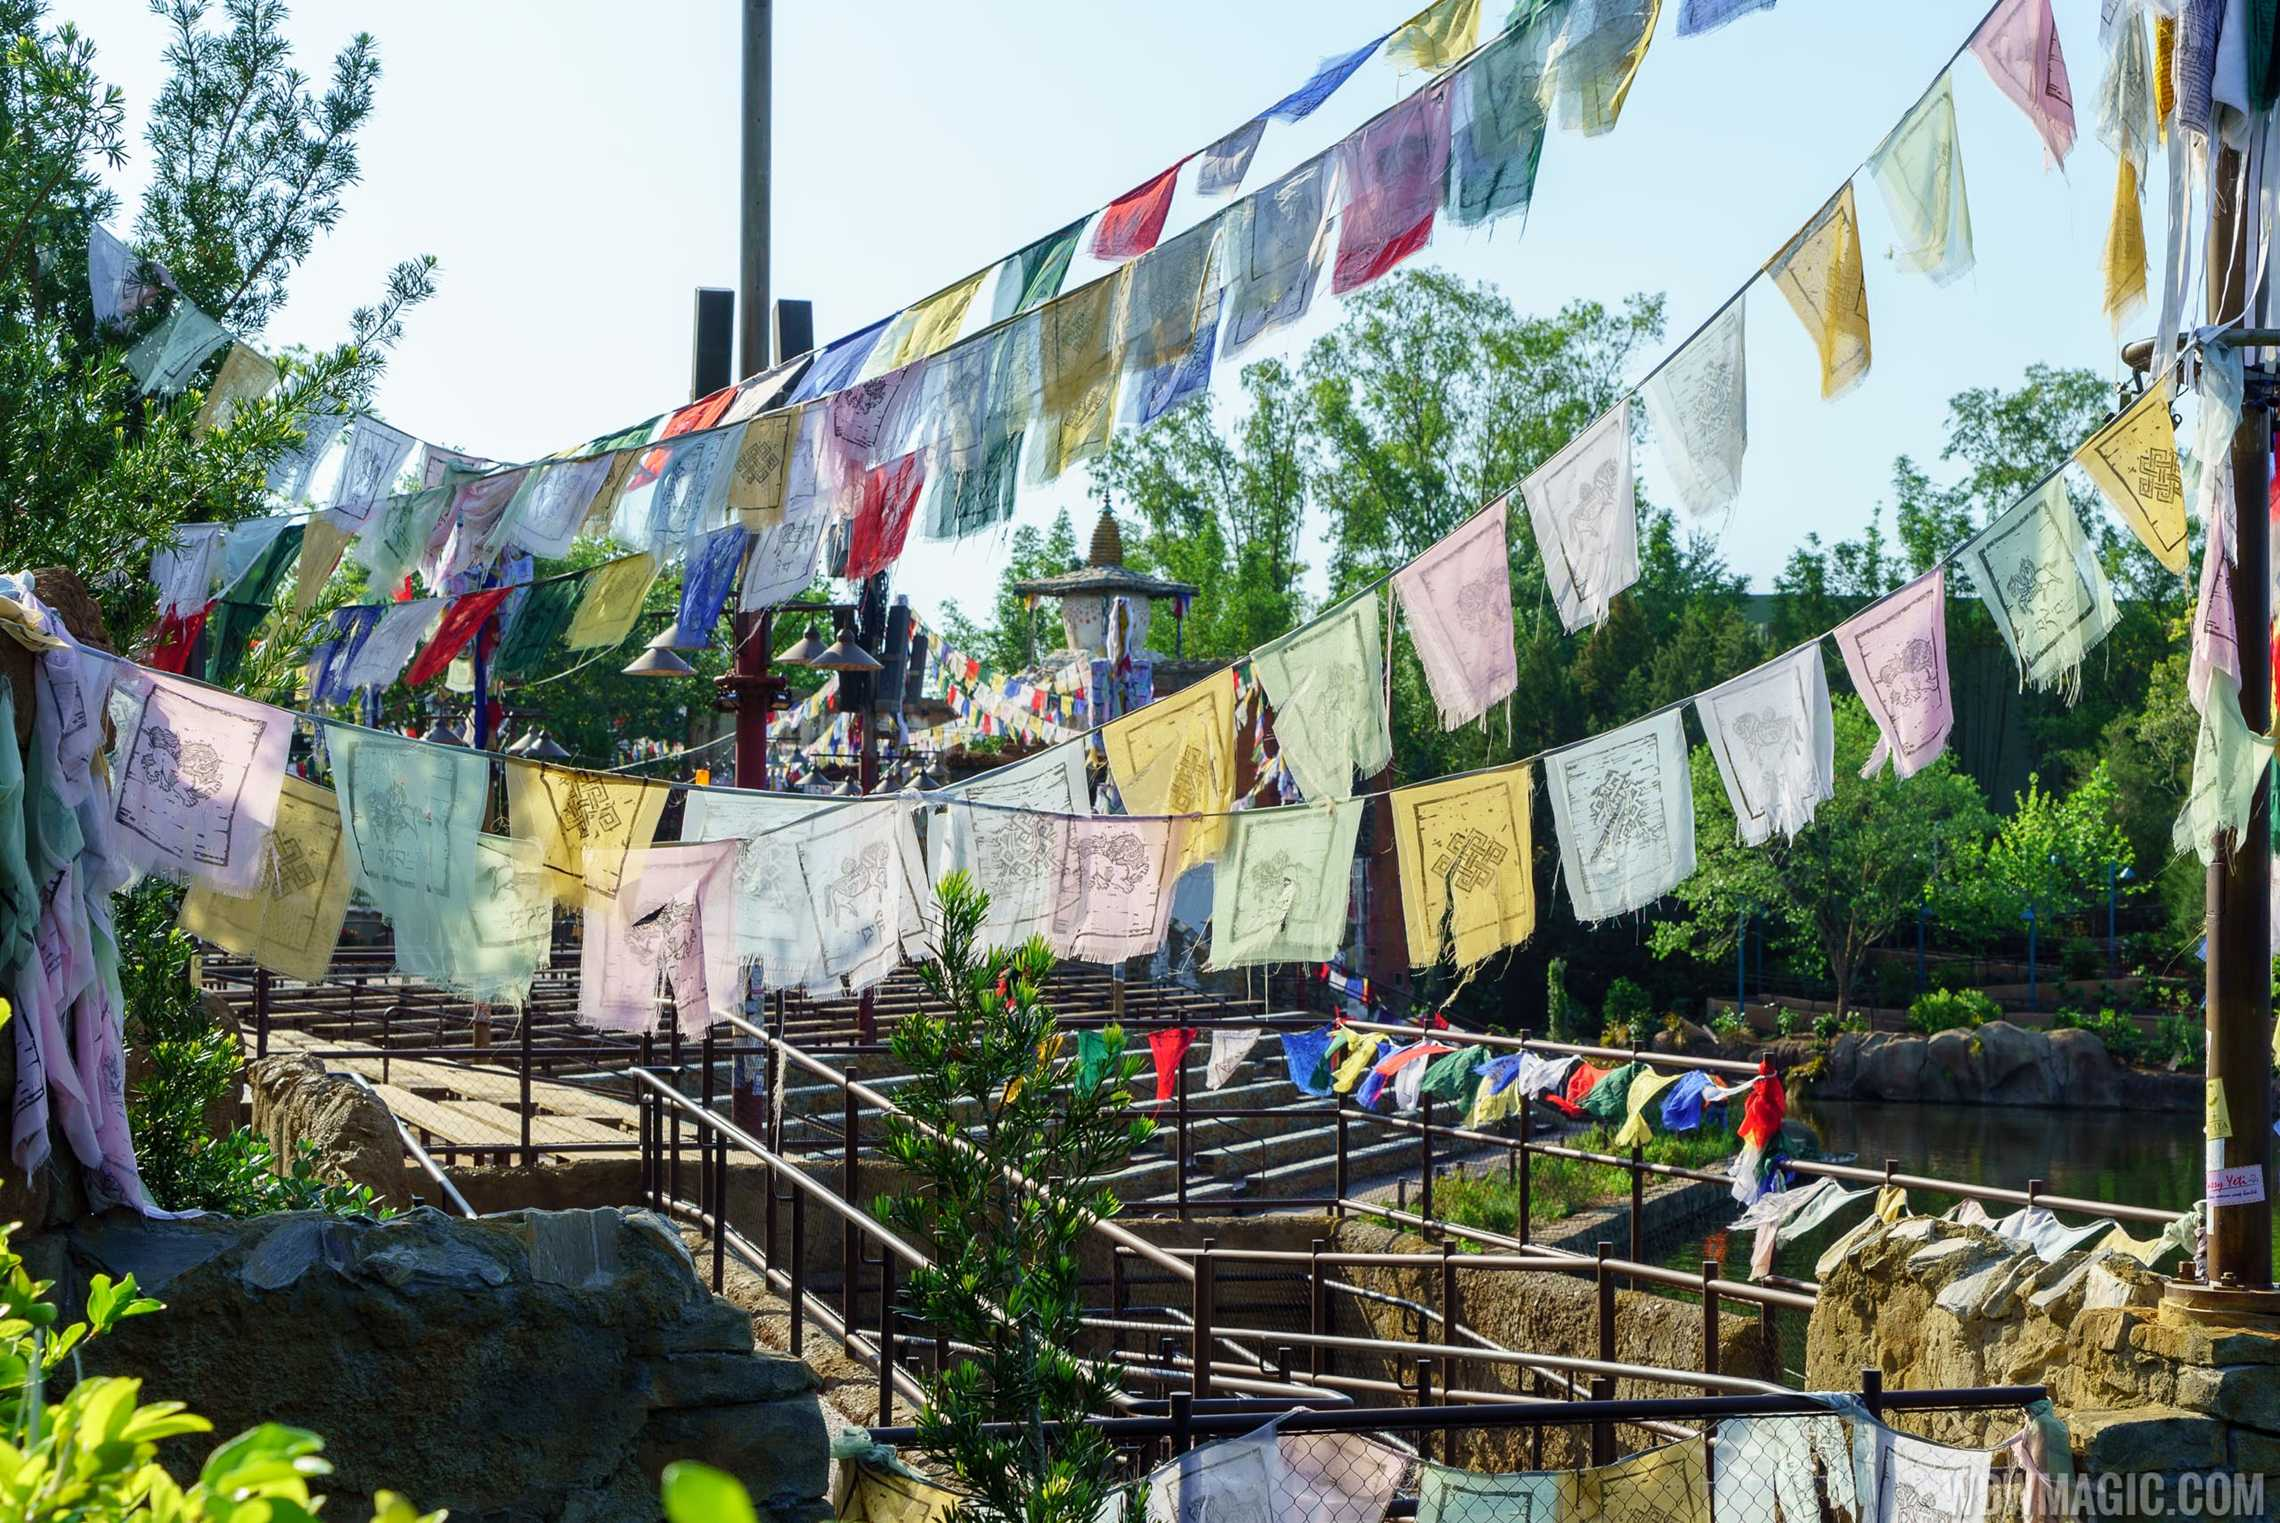 Rivers of Light viewing areas completed